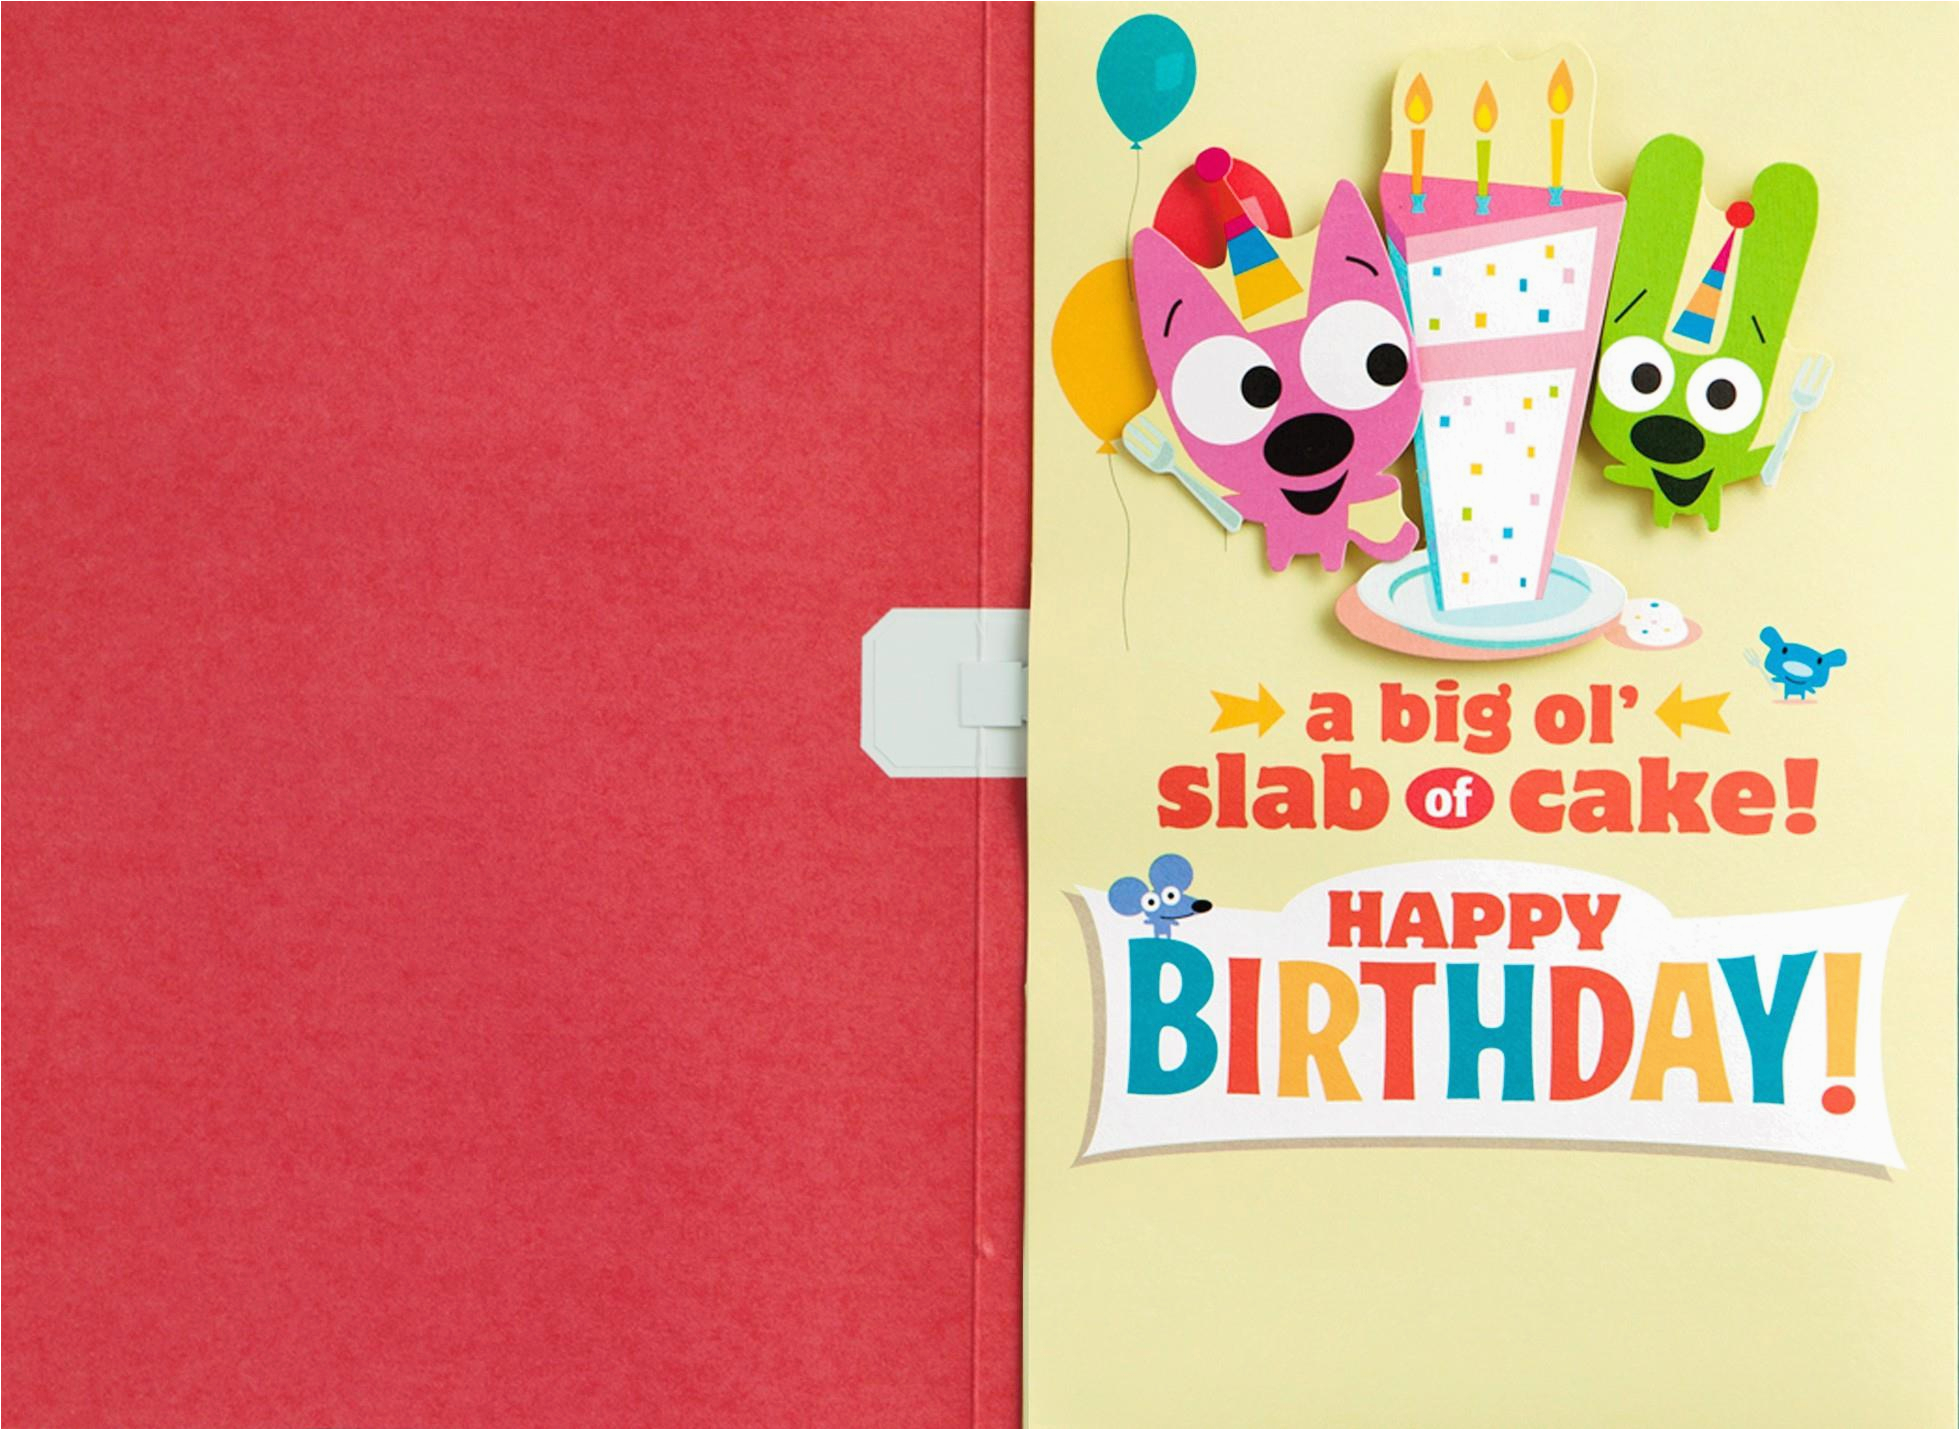 Hoops And Yoyo Birthday Cards With Sound Cake Card Motion